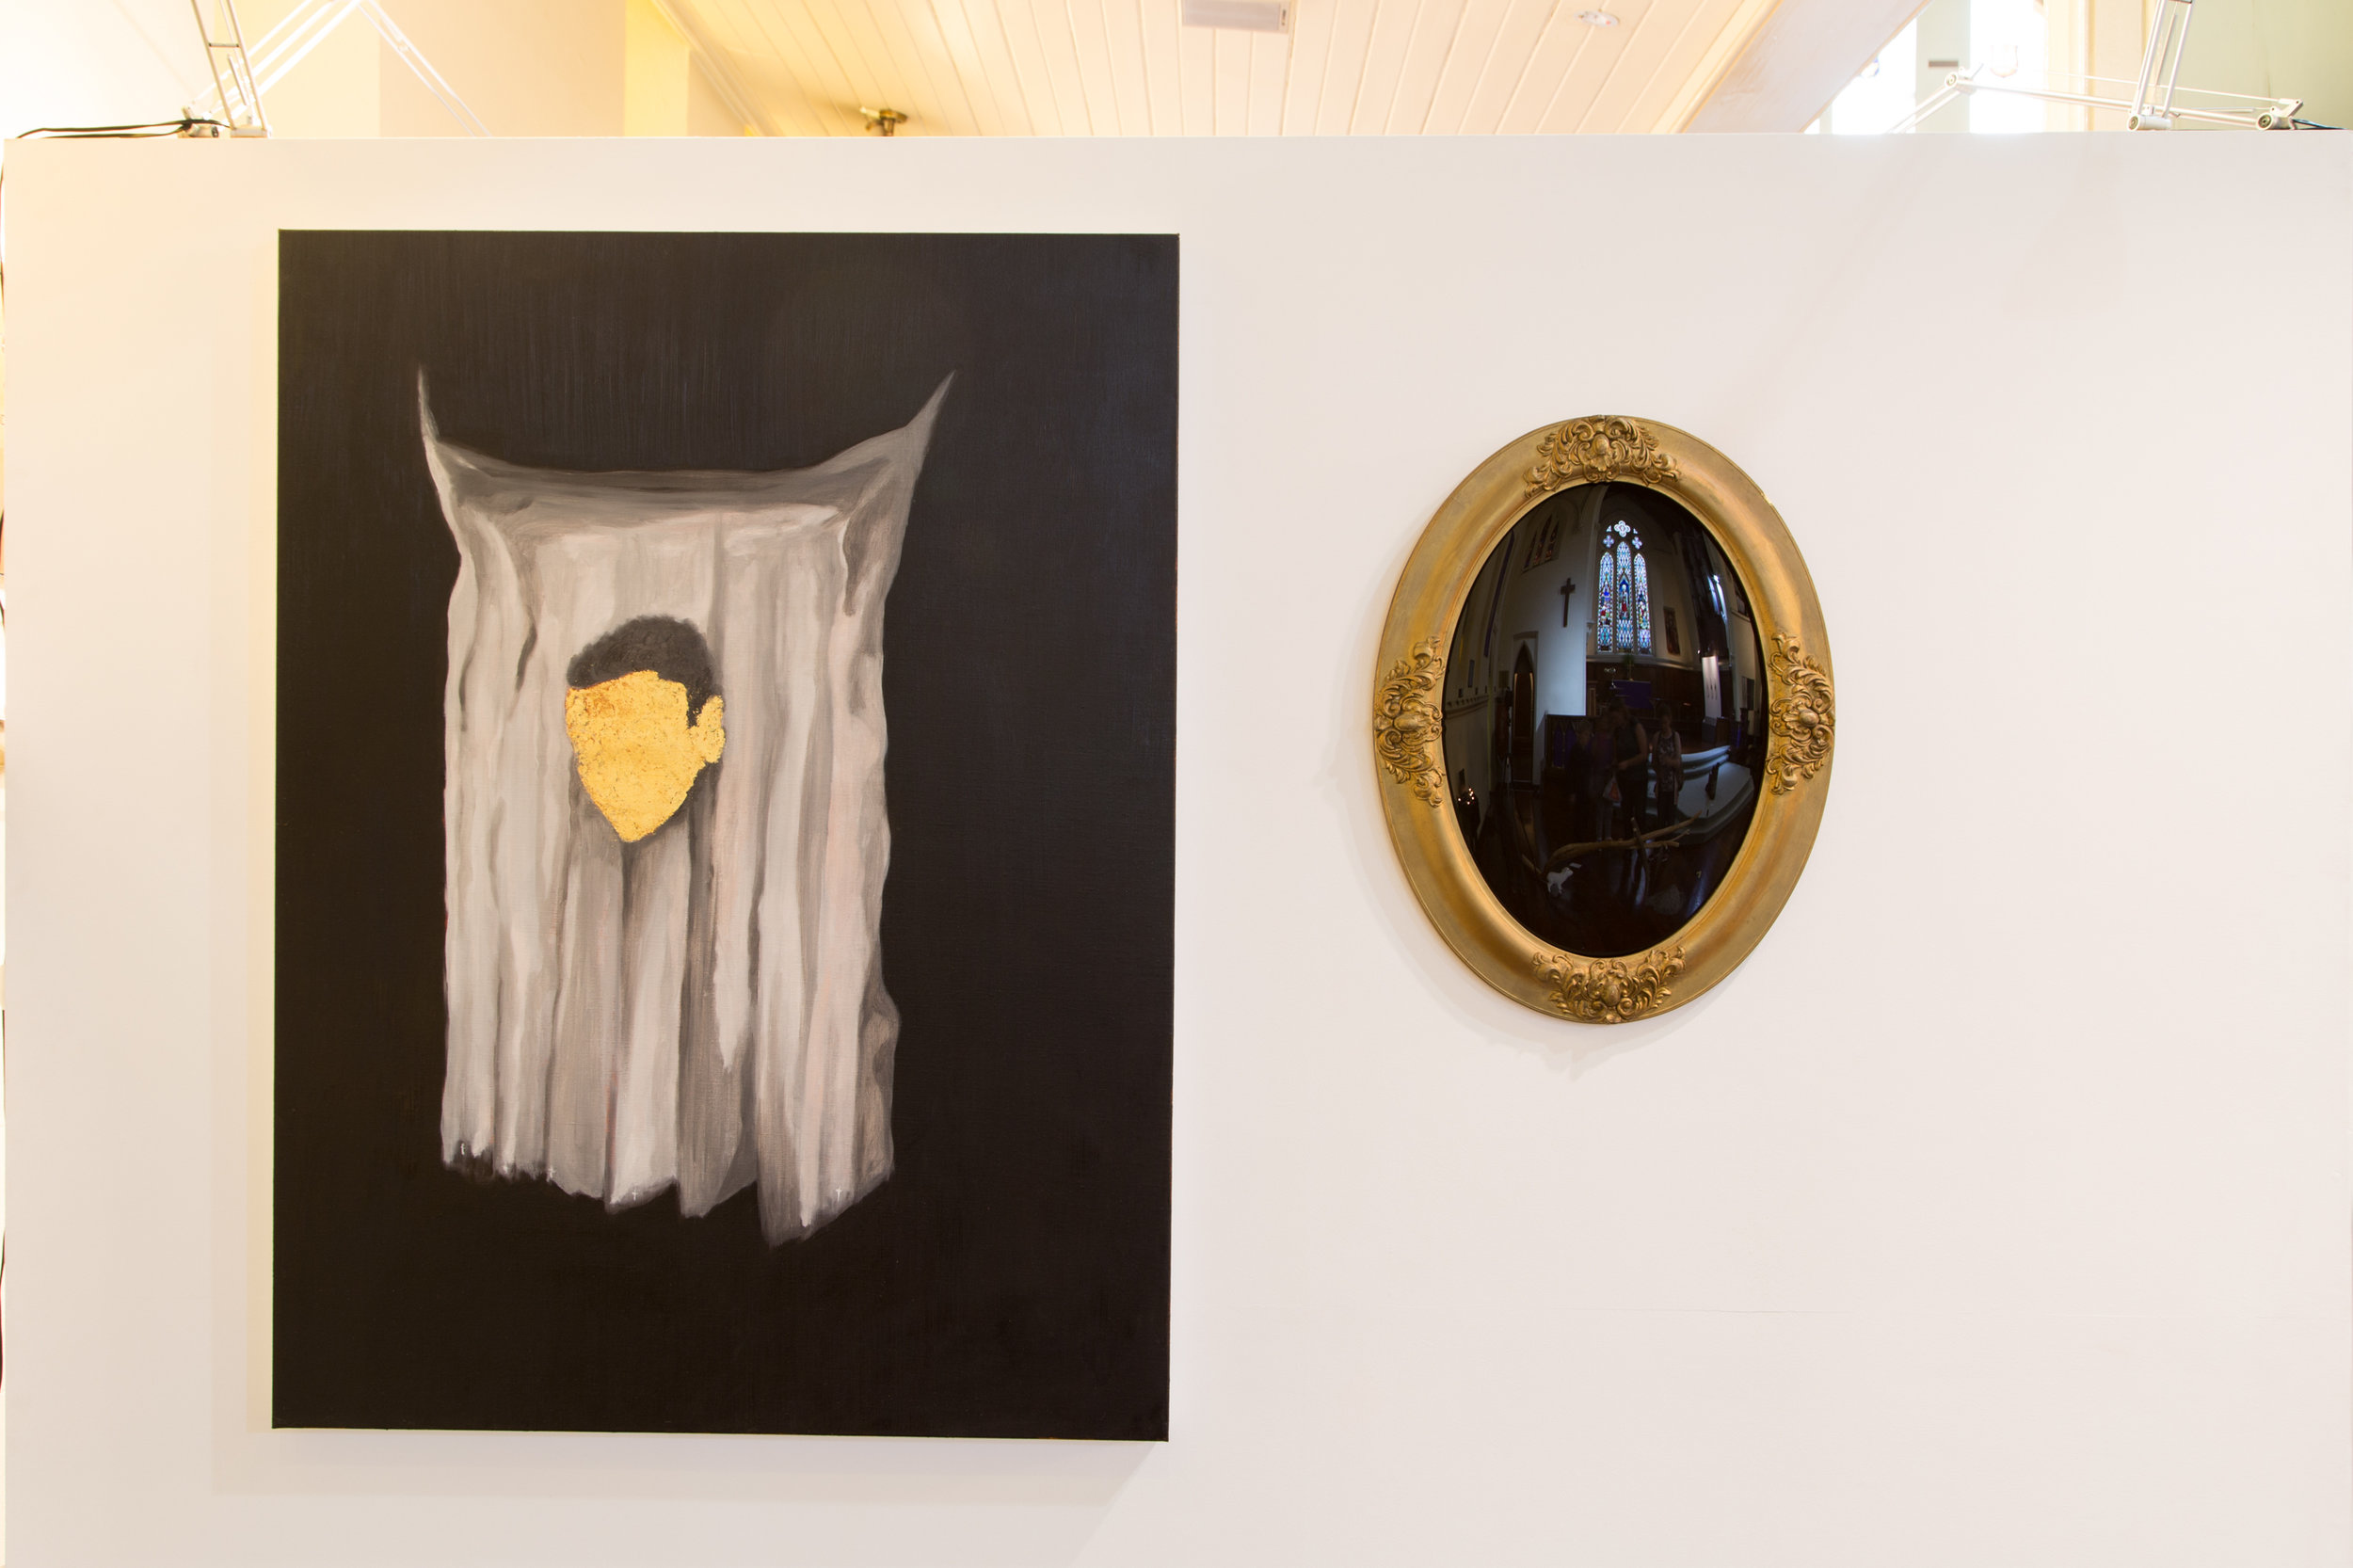 Station 6: Veronica Wipes Jesus' Face   Paul Uhlmann  Veronica's veil  2016, Oil on canvas and oval black mirror 122 x 91cm and 60 x 40cm